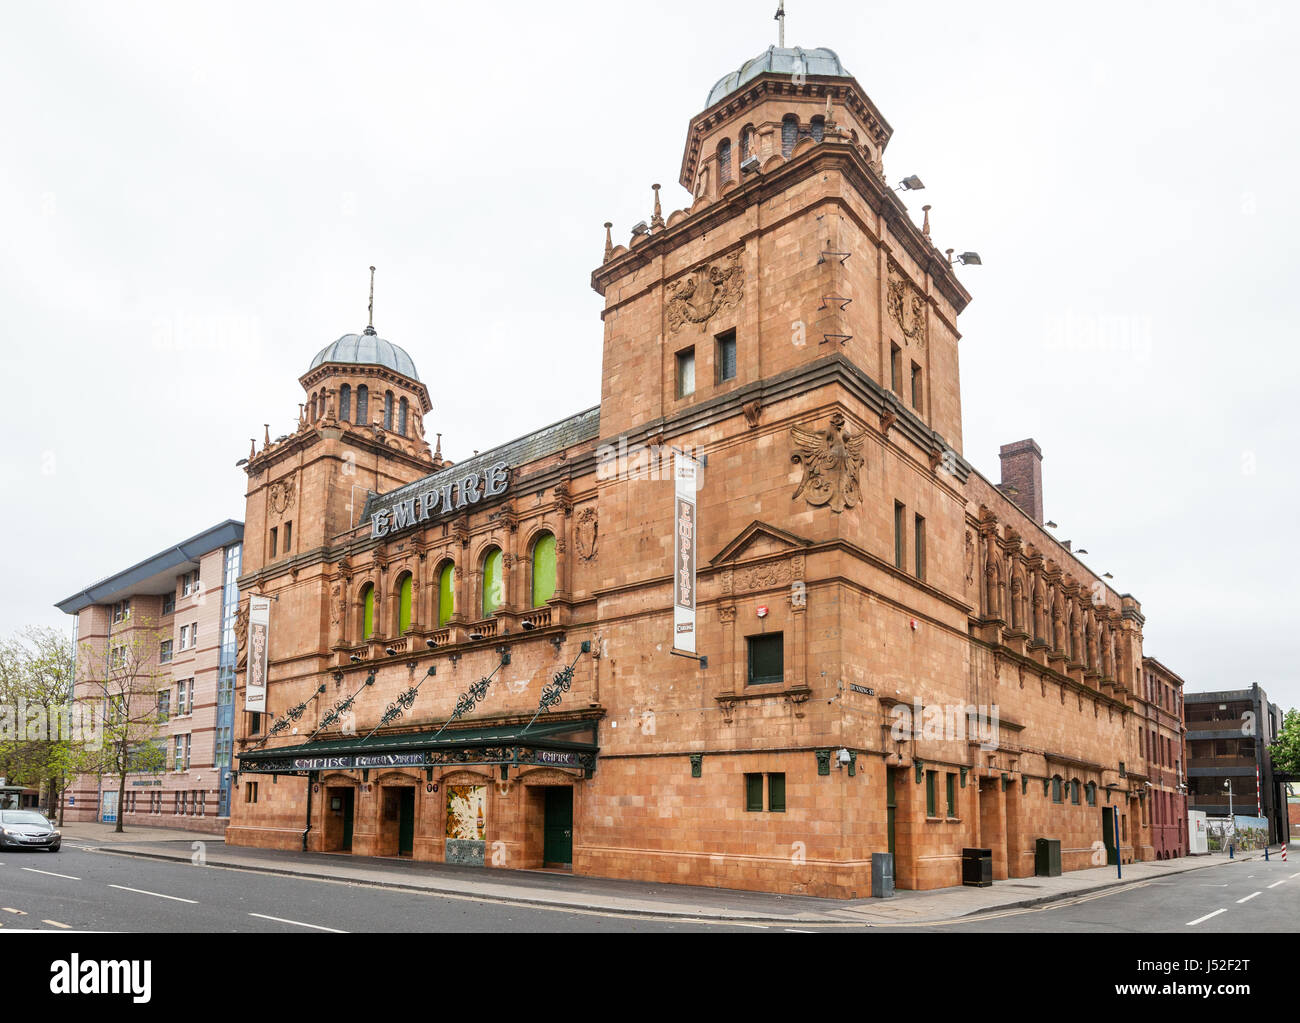 The Middlesbrough Empire was built in 1897 as a music hall, it is now a three story night club and music venue - Stock Image